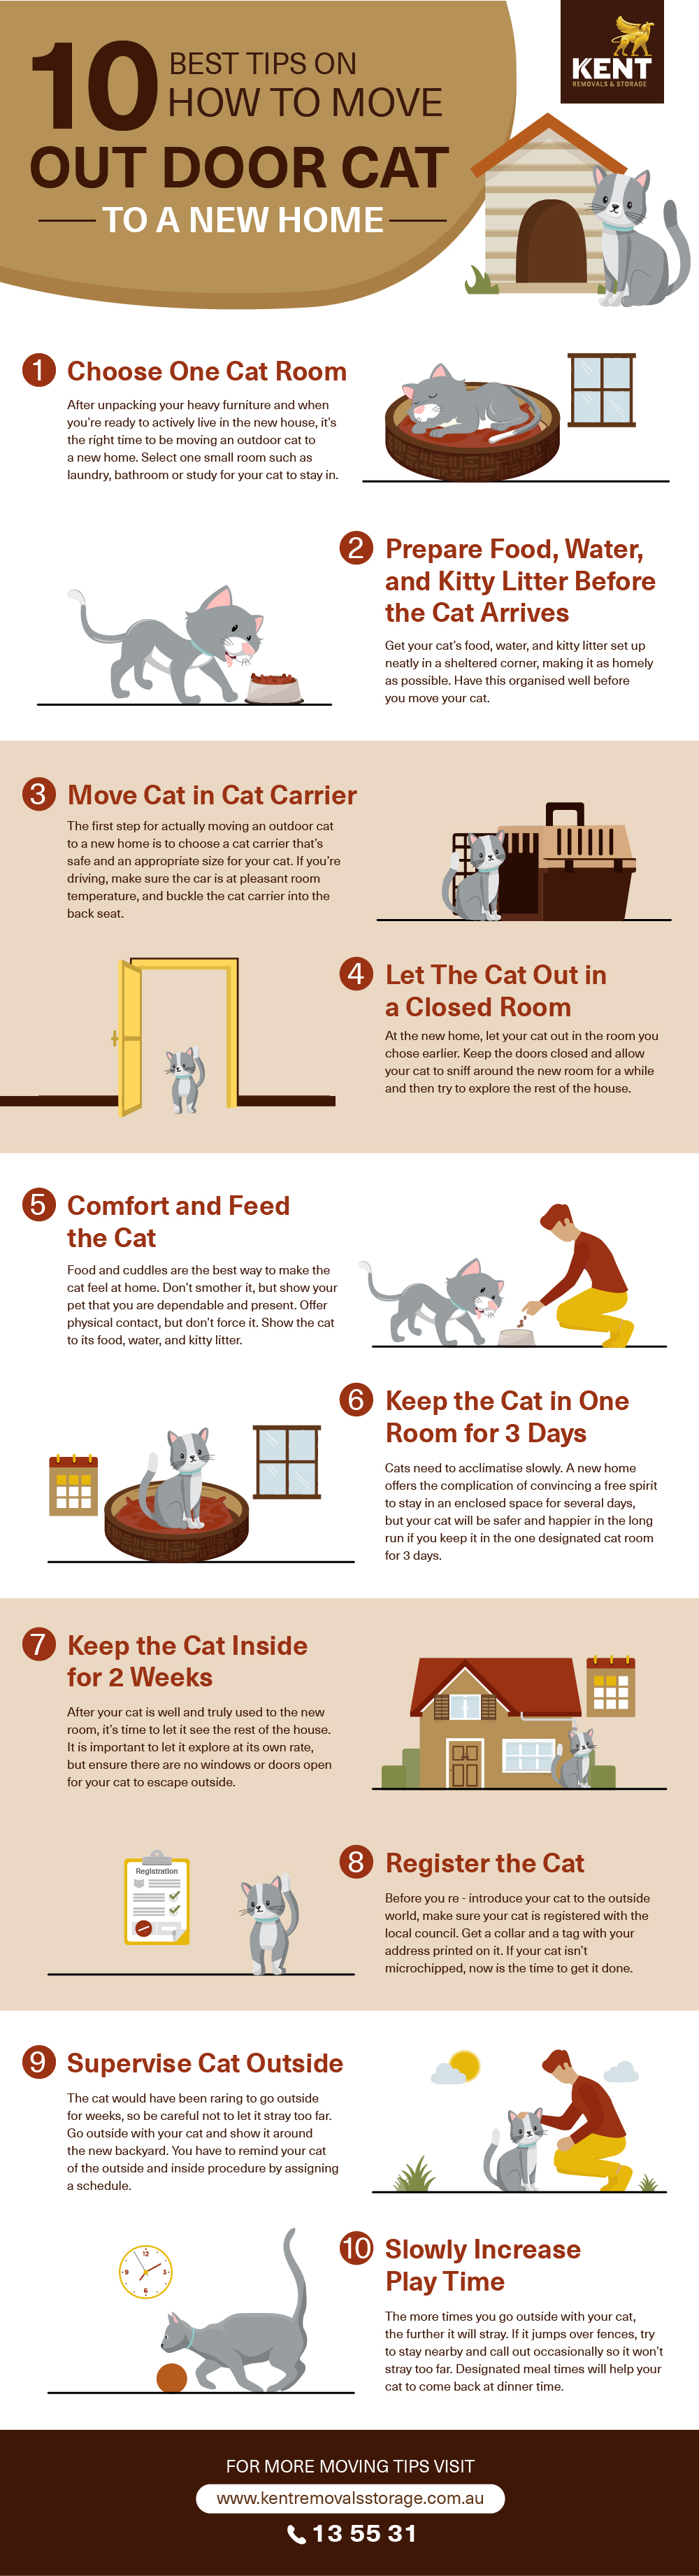 10 Best Tips On Moving An Outdoor Cat To A New Home Moving With An Outdoor Cat Kent